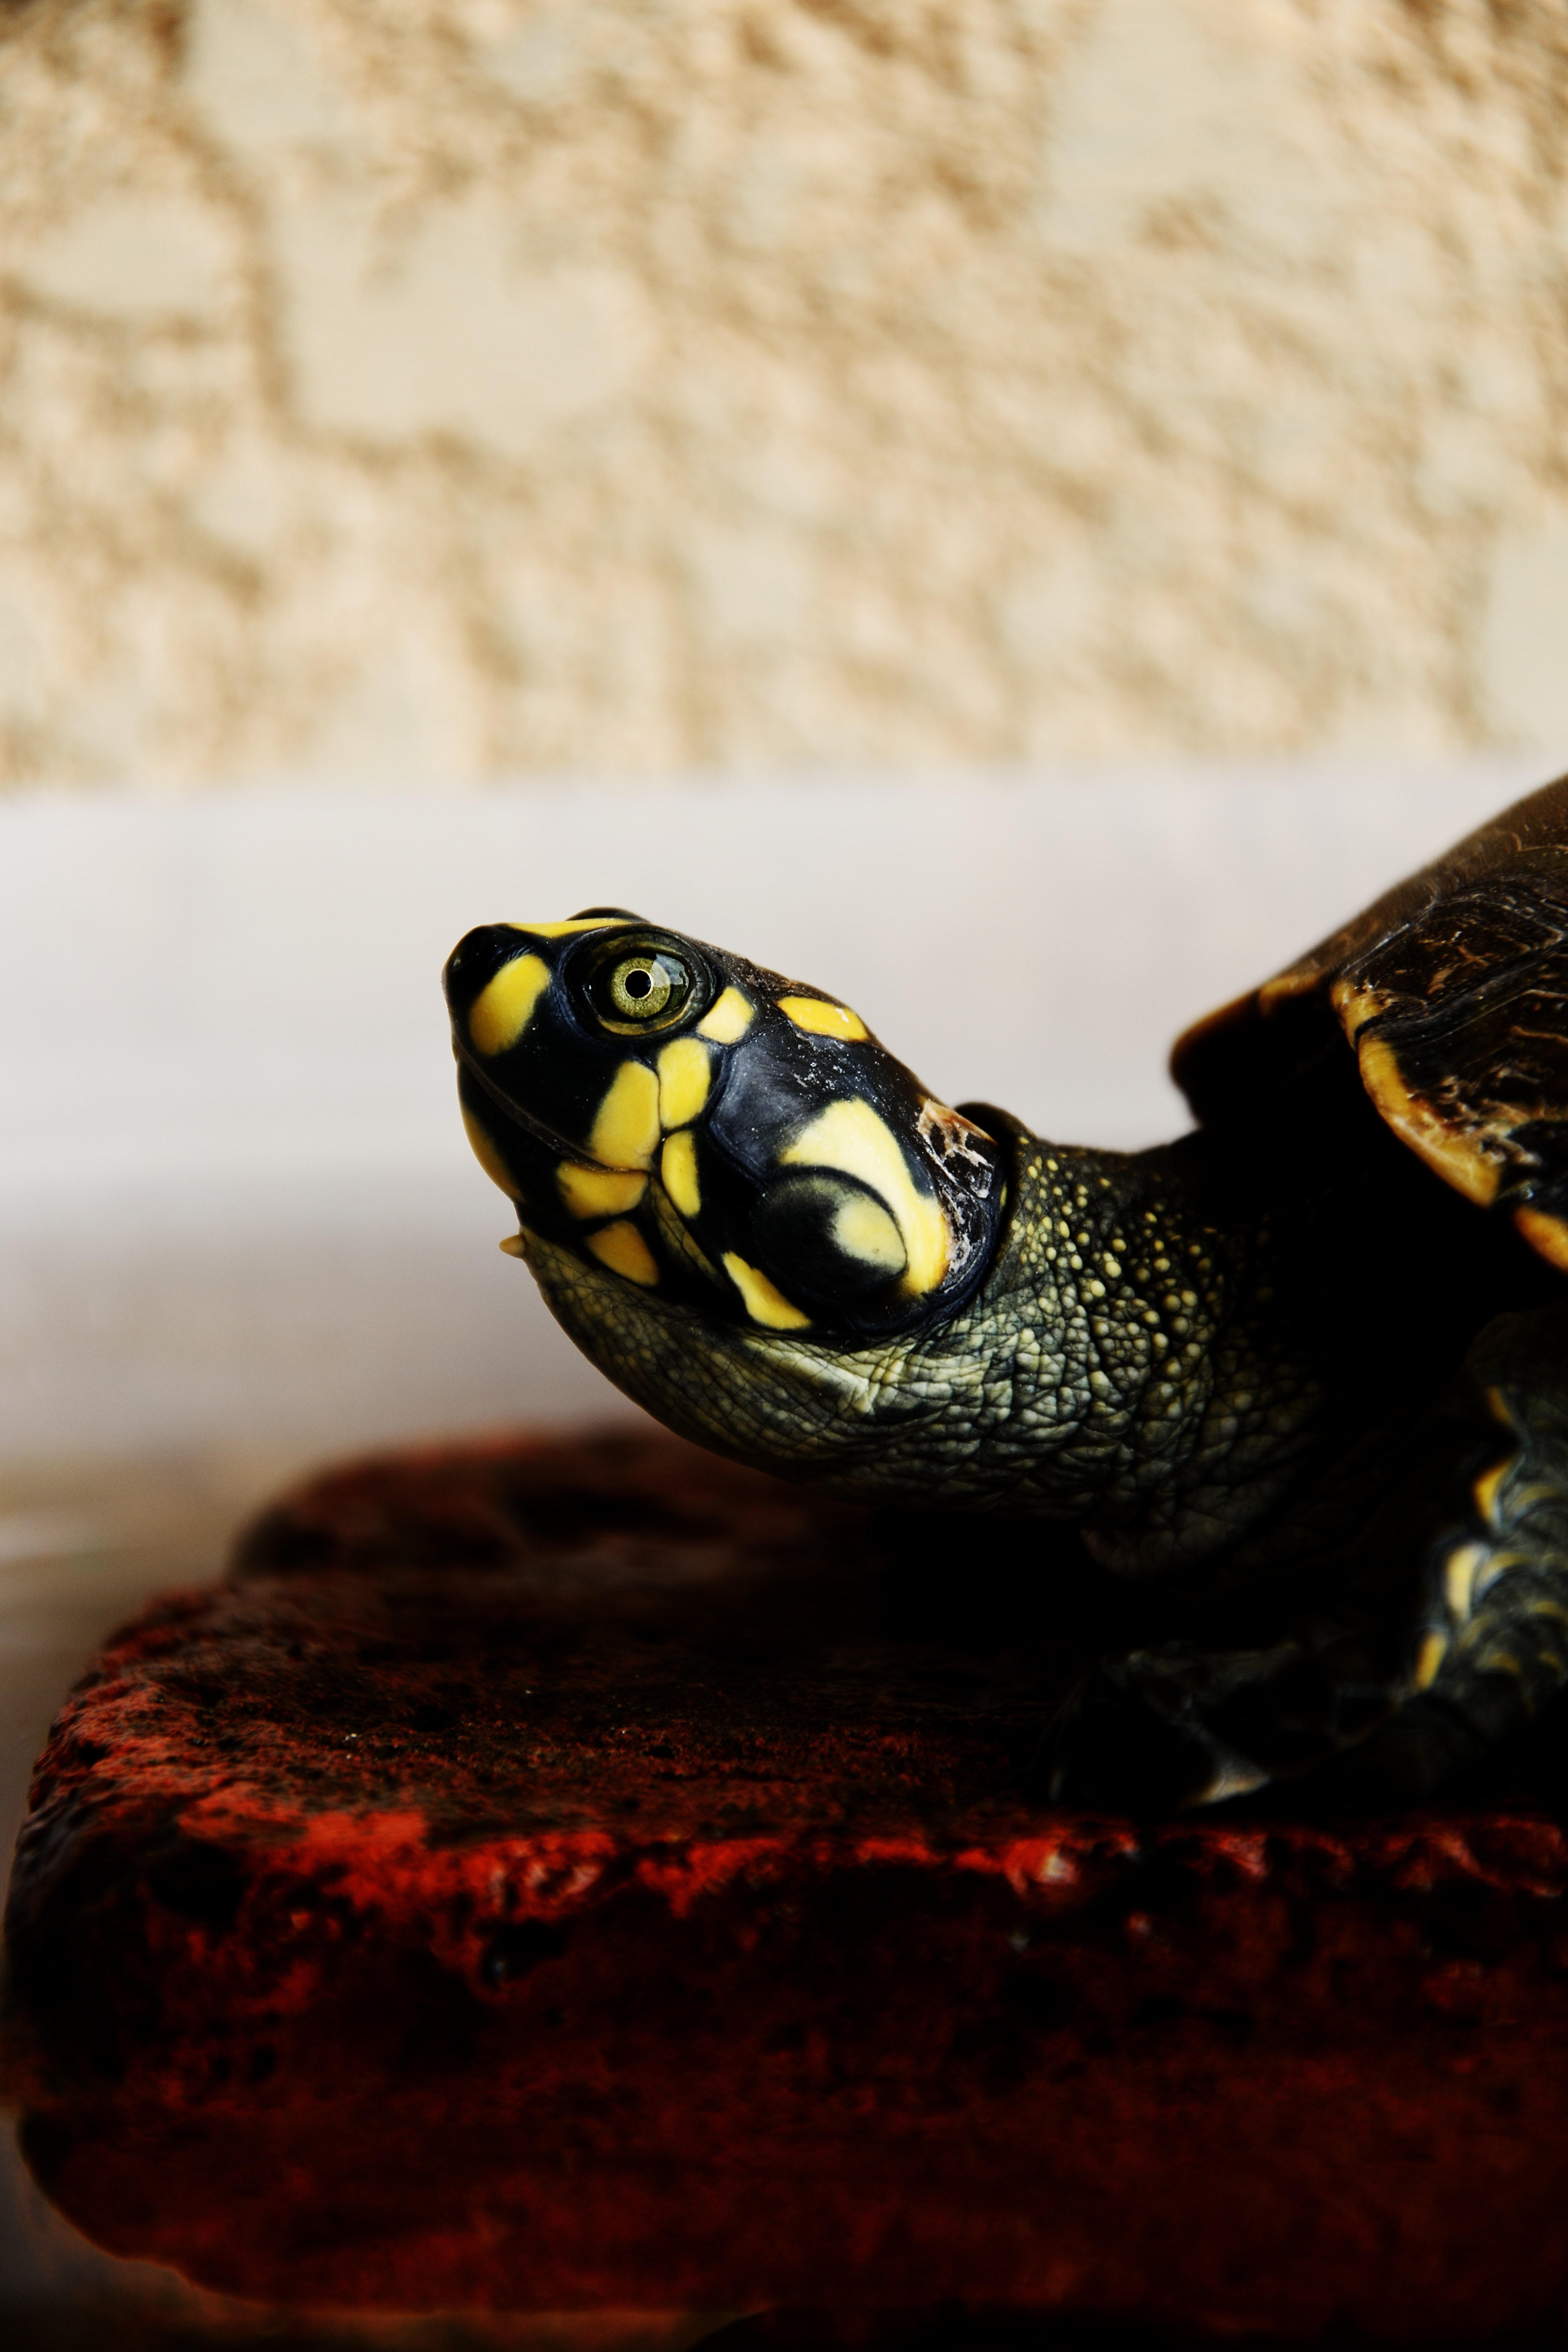 A yellow spotted turtle's profile